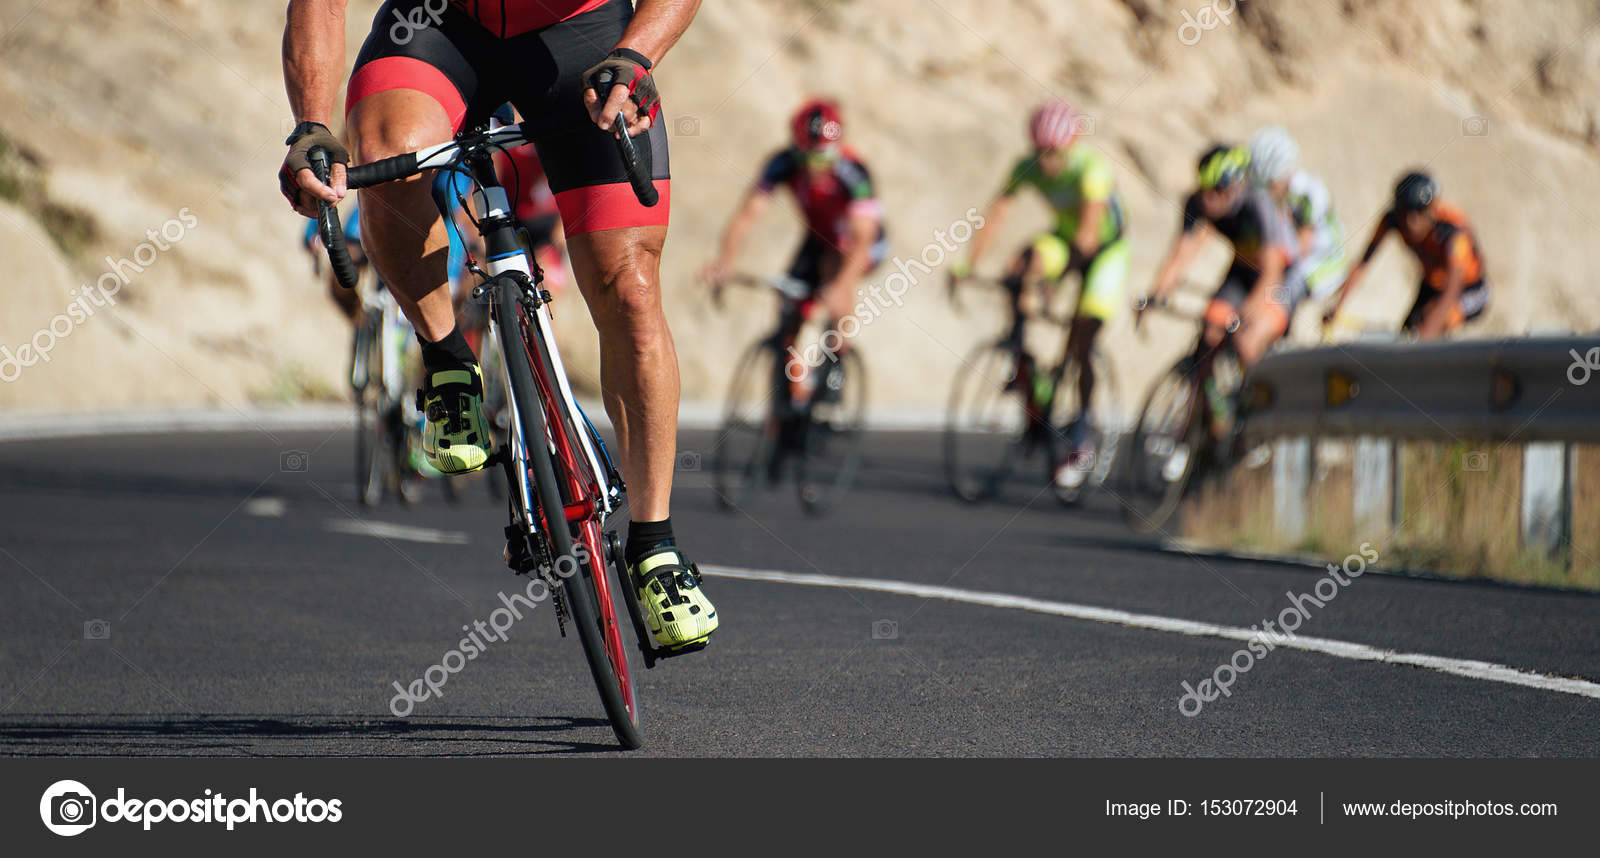 depositphotos_153072904-stock-photo-cycling-competition-race.jpg